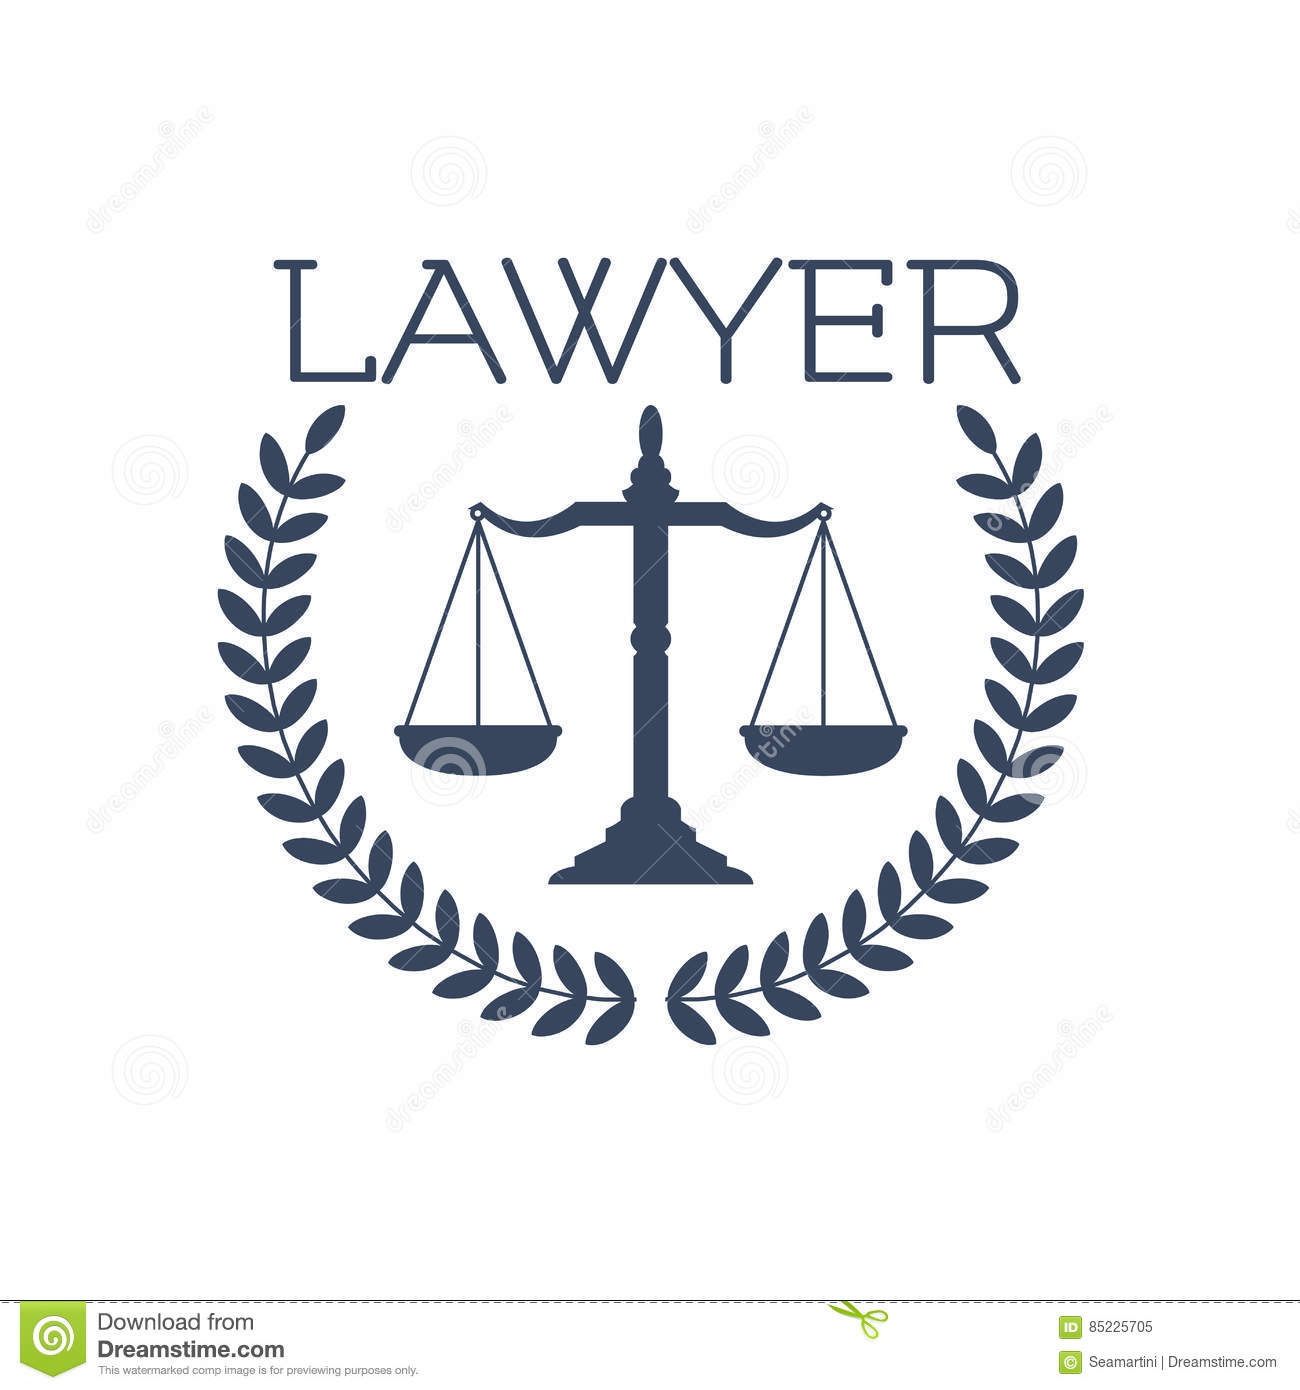 lawyer vector - photo #42